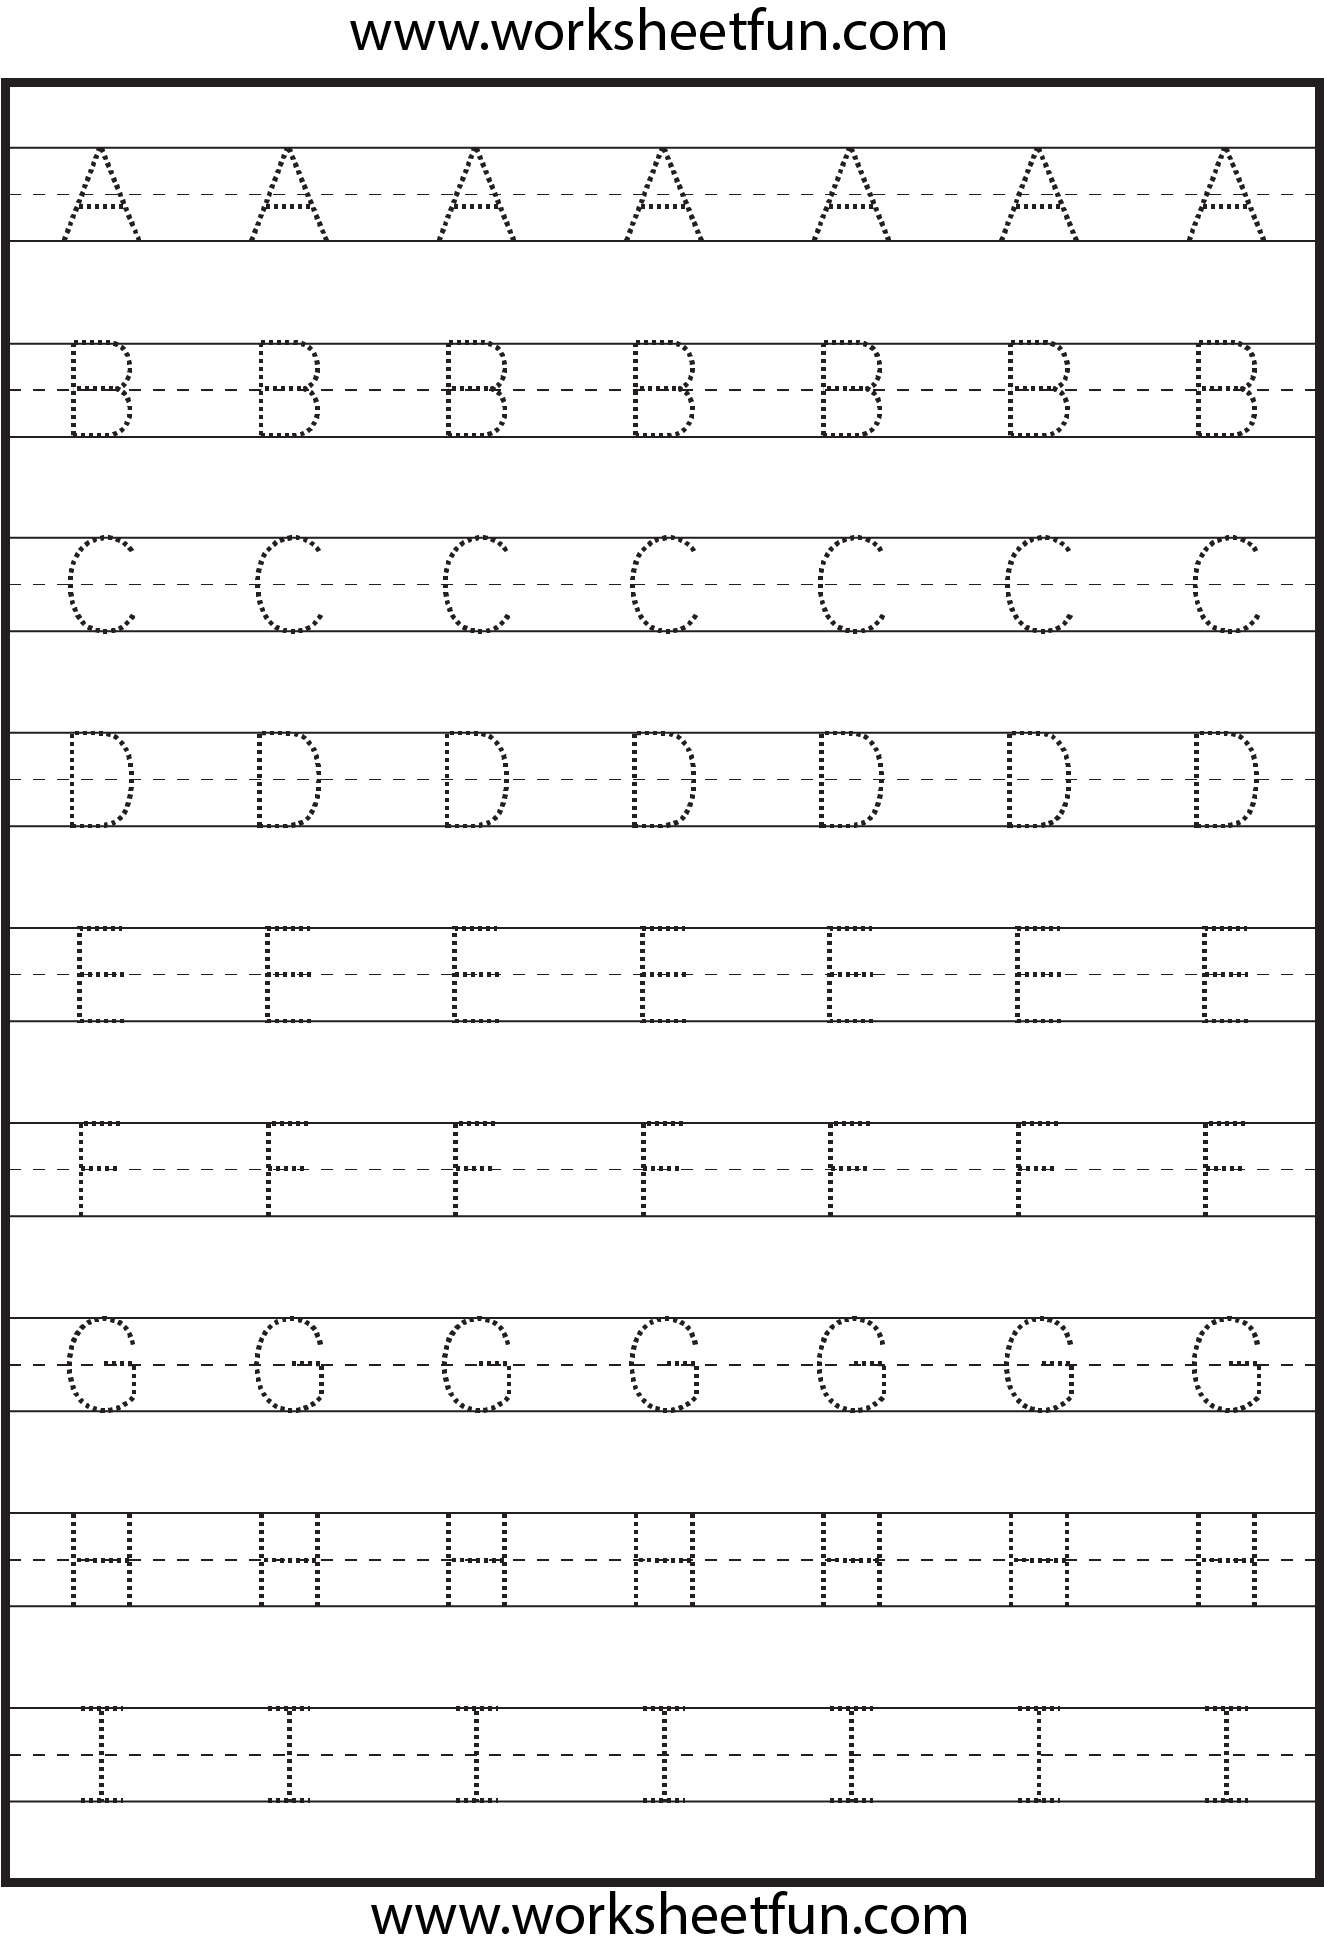 Worksheets Letter Tracing Worksheets letter tracing 3 worksheets kindergarten pinterest worksheets